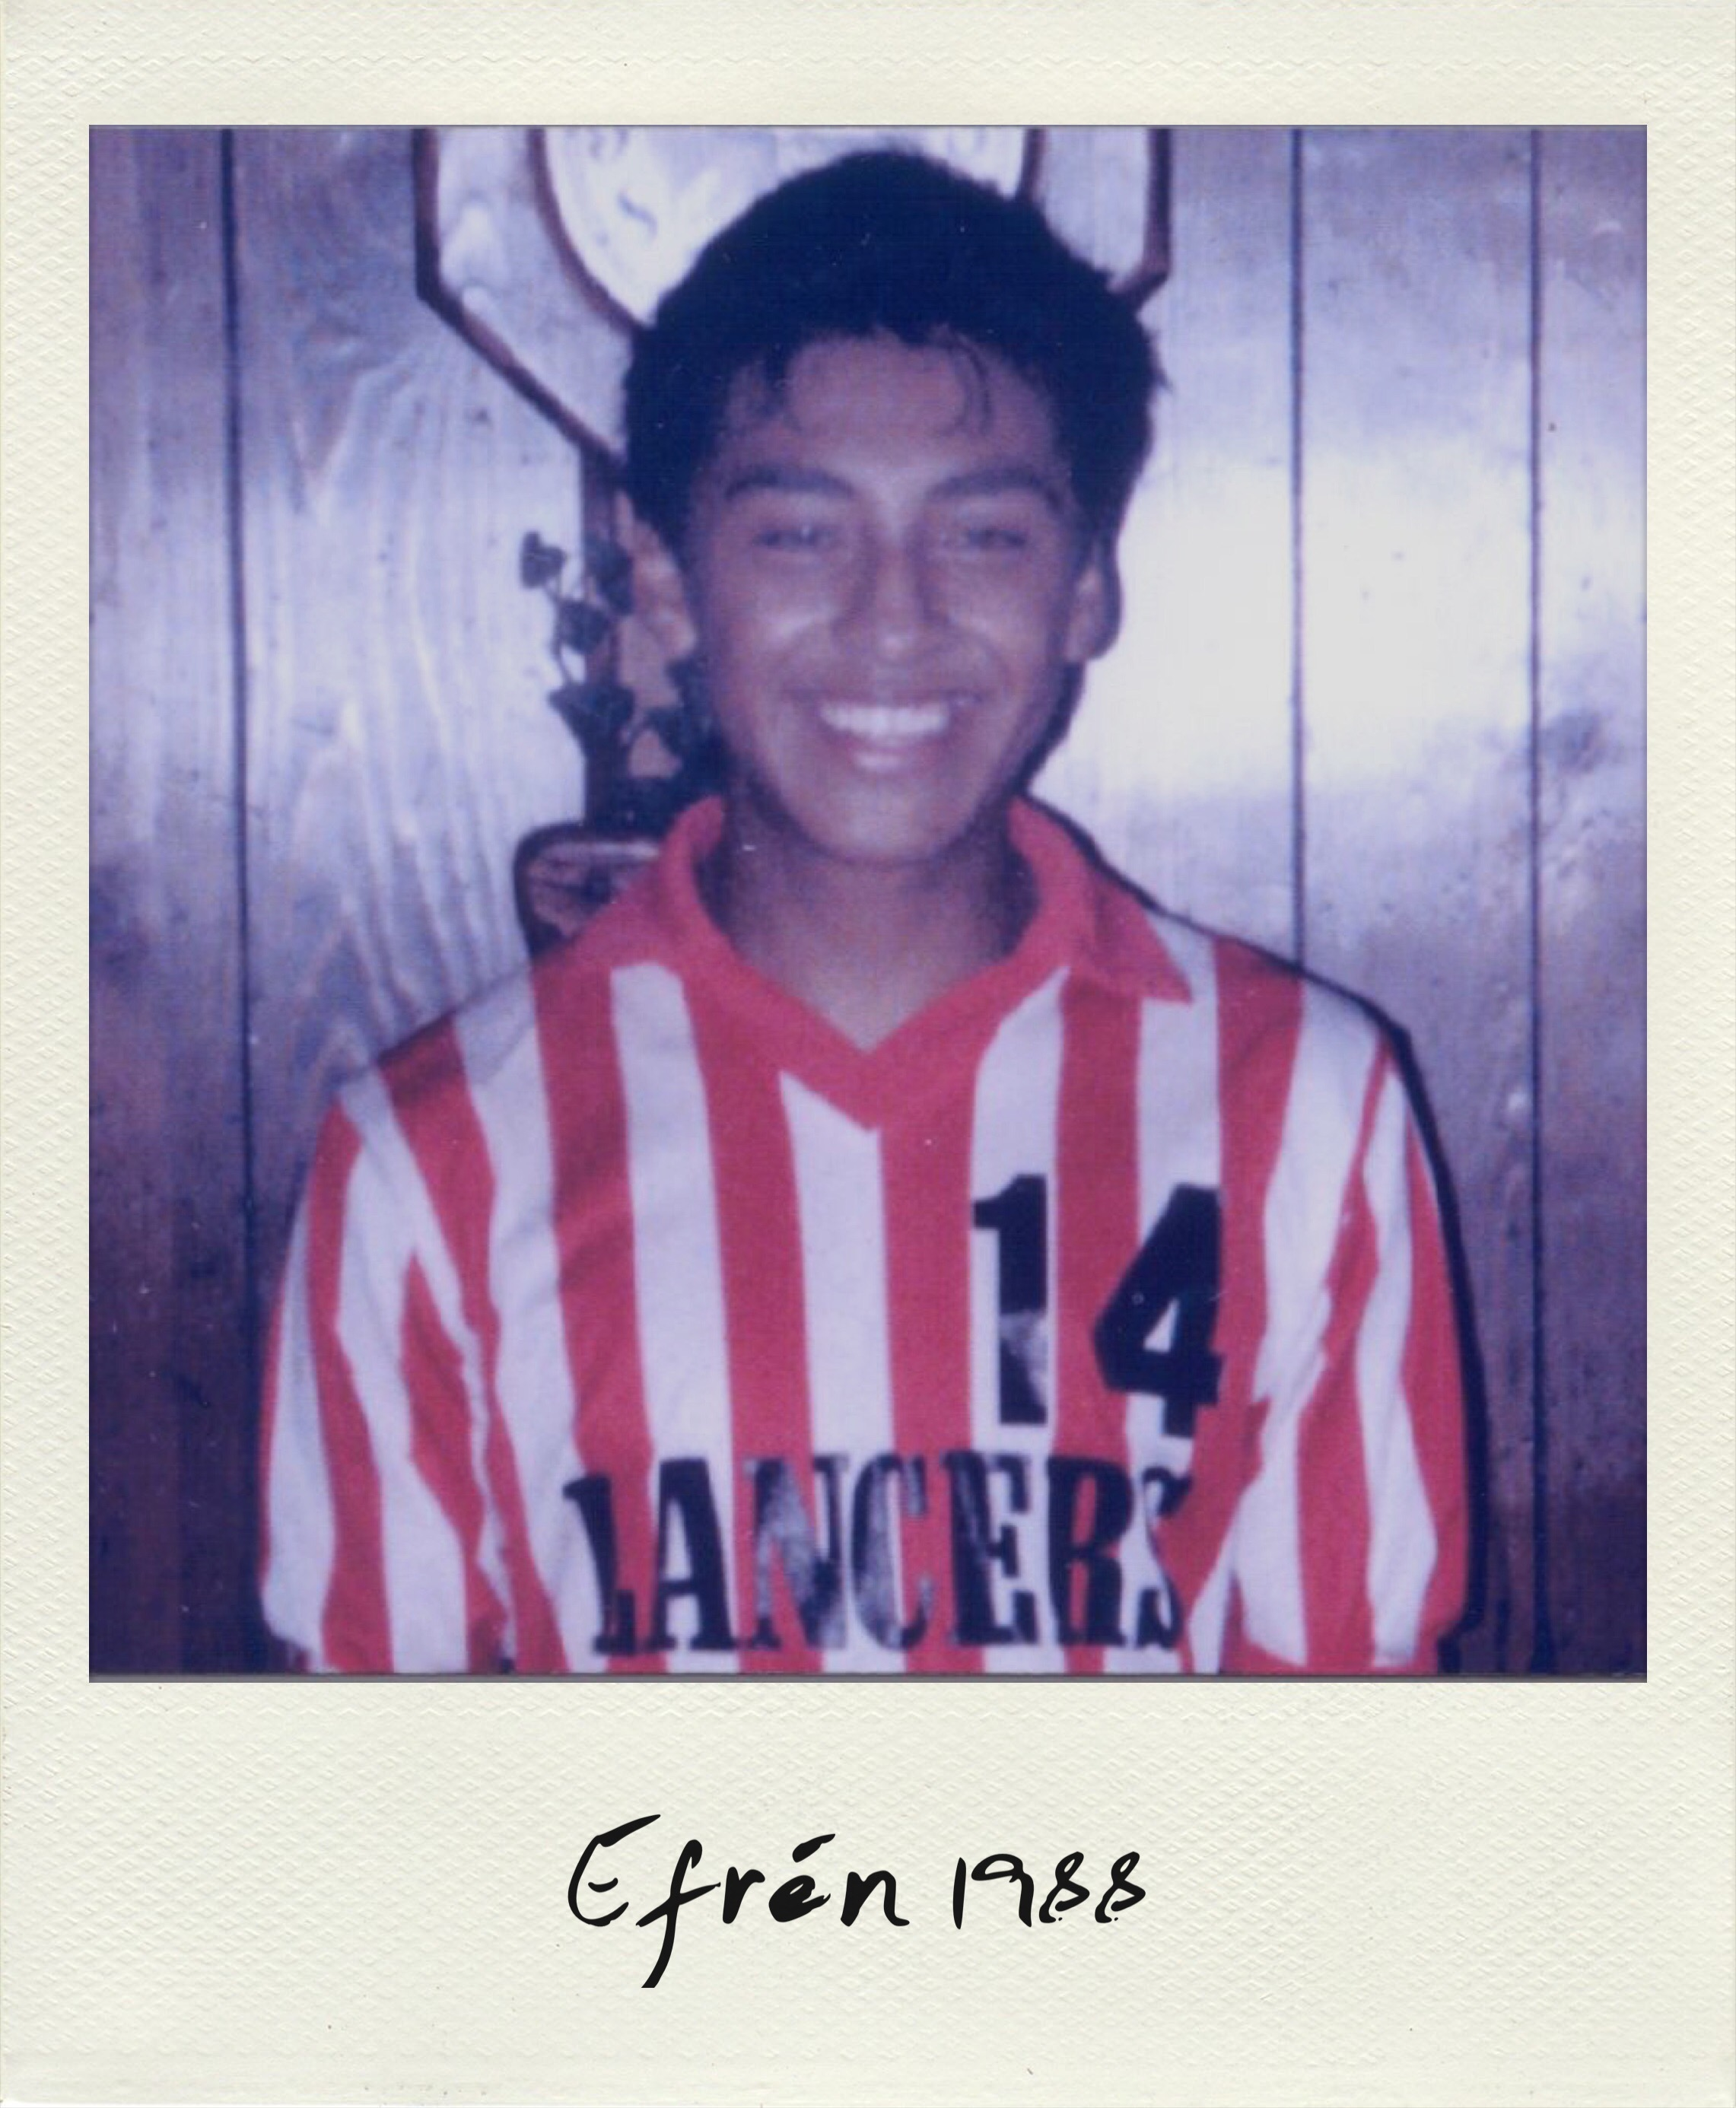 29 years ago, - Efren was convicted for the murder and armed robbery of Rick Tetzlaff,a manager at the grocery store where he was working as a bagboy. He was 15 years old and an honor roll student with no criminal record. Efren alleges that on the night of the crime, he was brought home by the store's manager after completing an overtime shift. He came home, heated up a slice of pizza his mom left out for him, went up to his parent's room to catch up about his day, and then went to bed.Meanwhile, the store was robbed and the manager was murdered.Efren was charged with 3 life sentences and was the first teenager to be automatically sentenced to JLWOP in Michigan's history.There was no physical evidence linking Efren to the crime and no eyewitnesses. The case against Efren was based primarily on the statements of other youths who received reduced charges and sentences in exchange for their testimonies. Efren's mother and his younger brothers all claim that they had witnessed his return home before the murder was committed. Those testimonies were discarded. Efrén was sentenced to two life without parole sentences and one parolable life sentence.Efren was tried and convicted by a jury comprised of 11 White jurors and one Black juror by the Berrien County Court in St. Joseph, MI, which in 1989 had a population that was 95% white. The judge, prosecutor, all the investigating police, and the victim in the case were all white. All but one of the youths in Berrien County who have received life without parole sentences have been children of color.Efren is still seeking exoneration. He expects to be resentenced in the coming months.